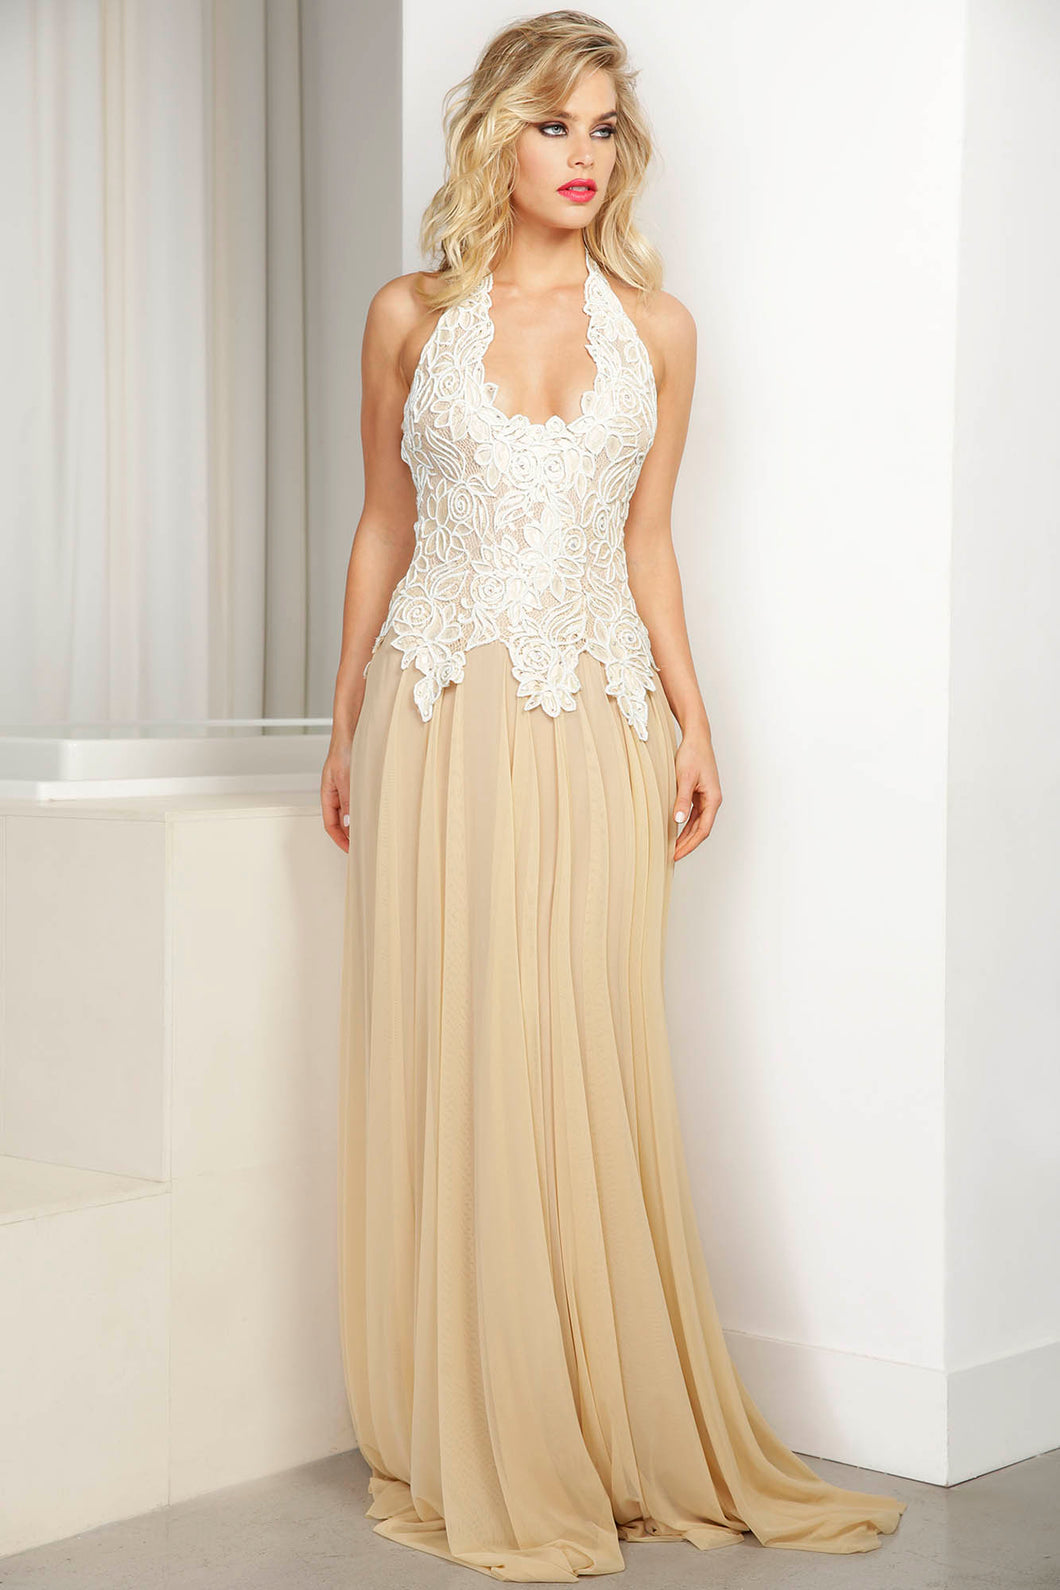 Iris Hand-painted White Cream Caviar Long Dress - BACCIO Couture